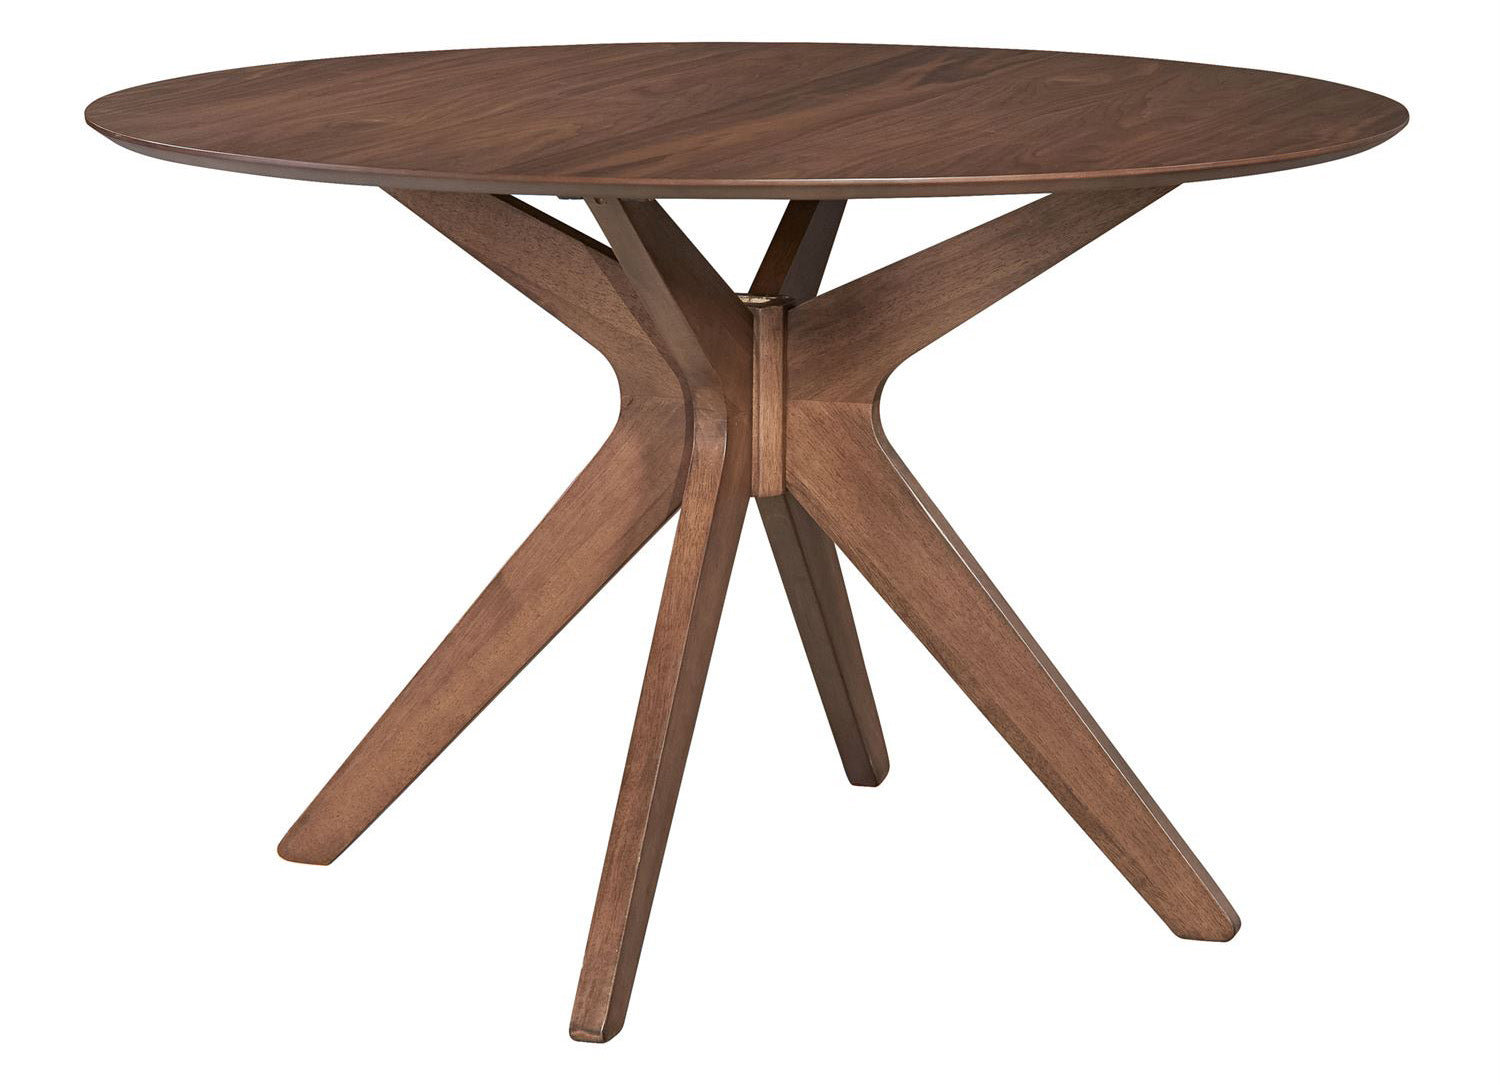 Space Savers Round Dining Table - MJM Furniture